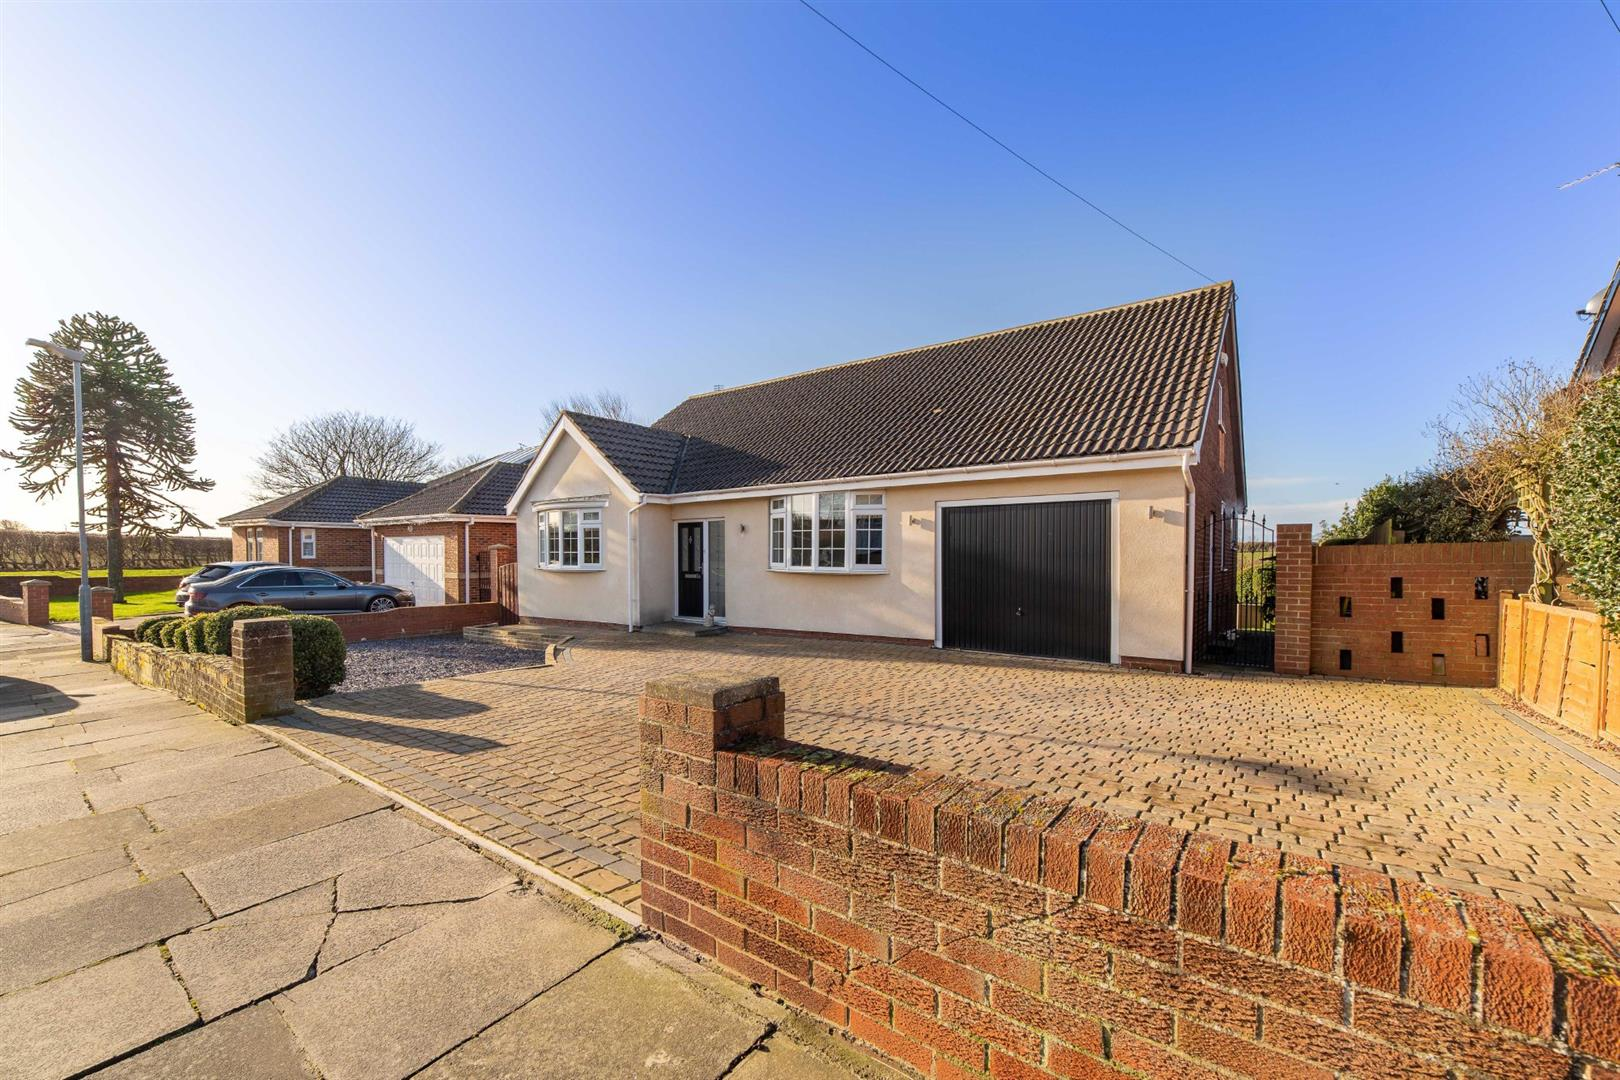 2 bed detached bungalow for sale in Whitley Bay, NE26 4BN - Property Image 1